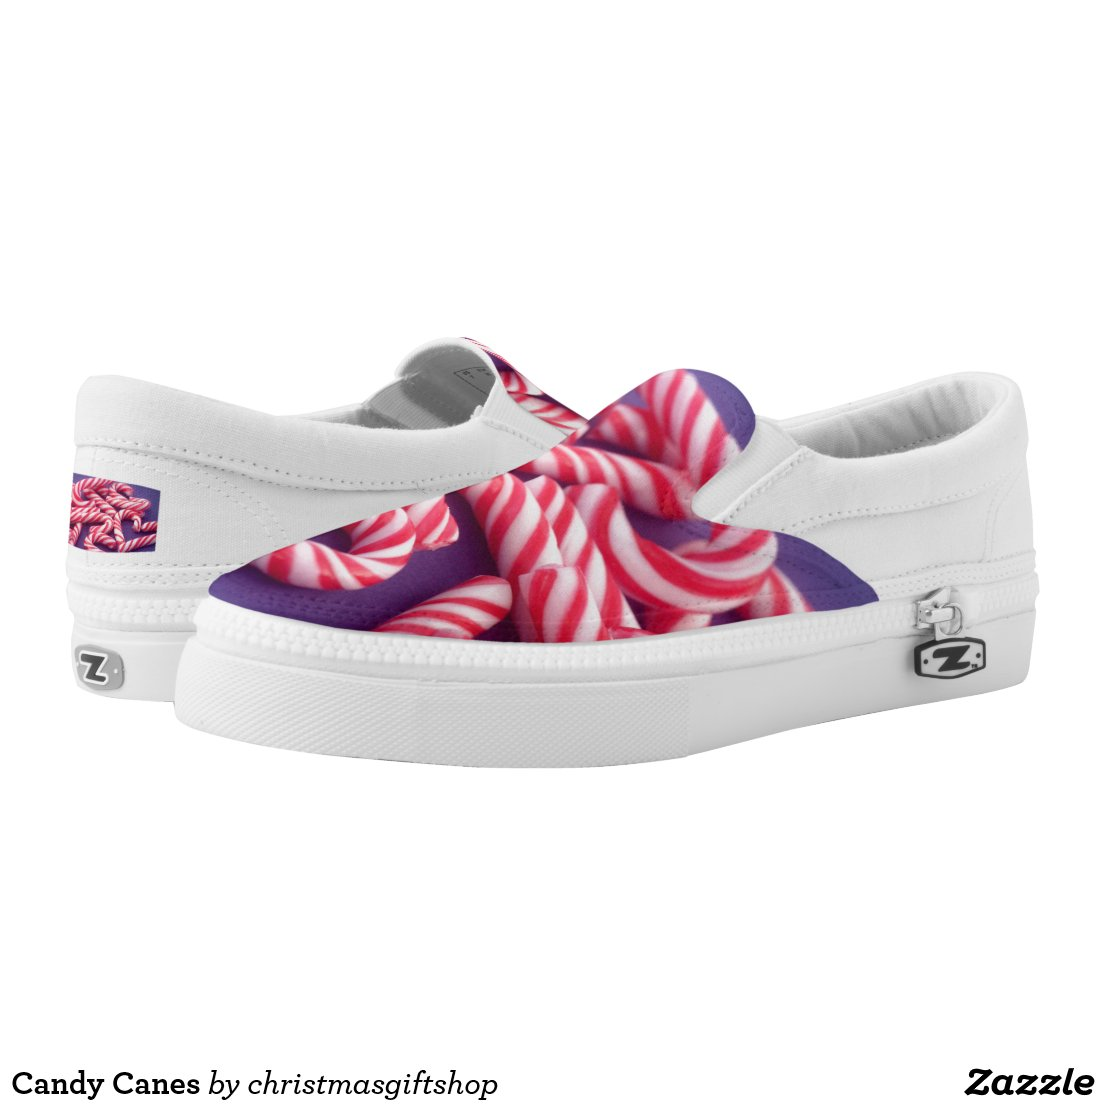 Candy Canes Slip-On Sneakers